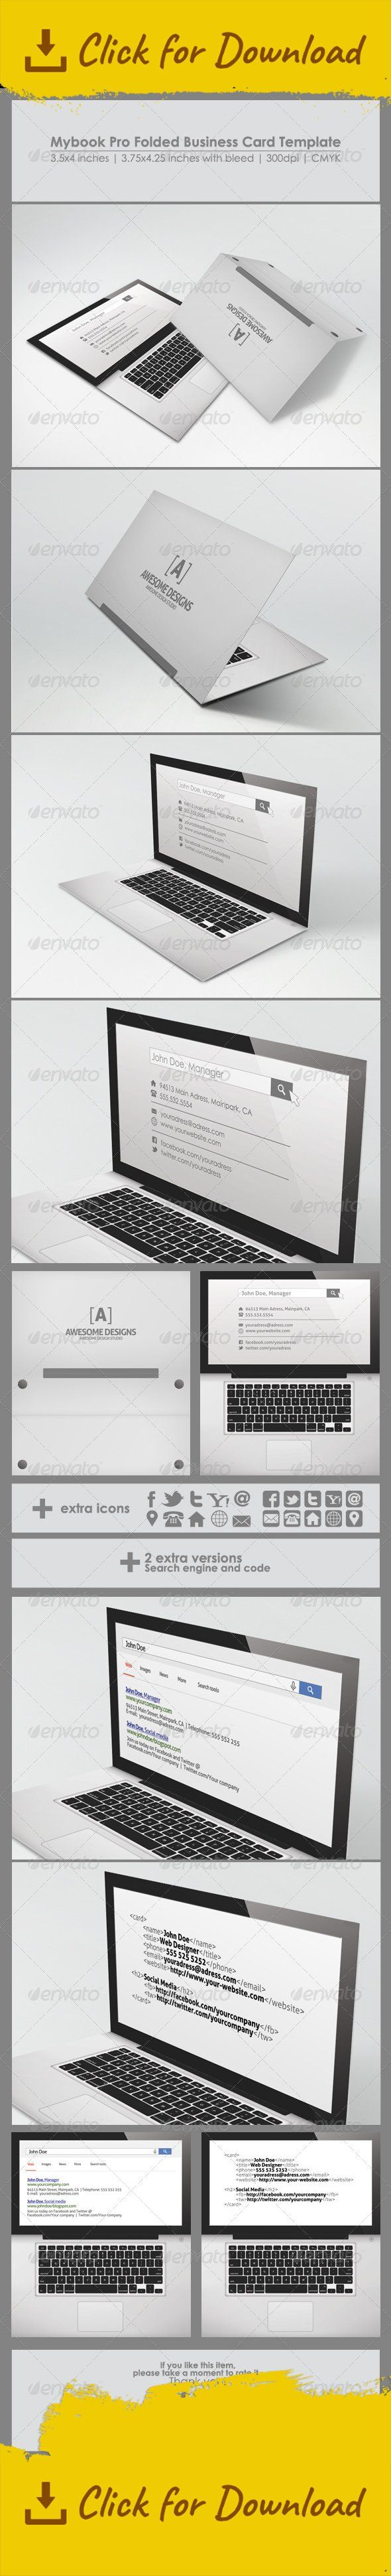 business card, card, code, company, computer, creative, fold, folded, grey, keyboard, laptop, modern, multimedia, personal, print, search, technology, web, white                                          	Mybook Pro Folded Business Card Template   	Print ready template. Very easy to modify, color, edit and resize.   	Features:  PSD Files Print ready Editable vector shapes Editable text 3.5×4 inches 3.75×4.25 inches with bleed 300 dpi, CMYK layered and organised 3 versions small icons pack ...